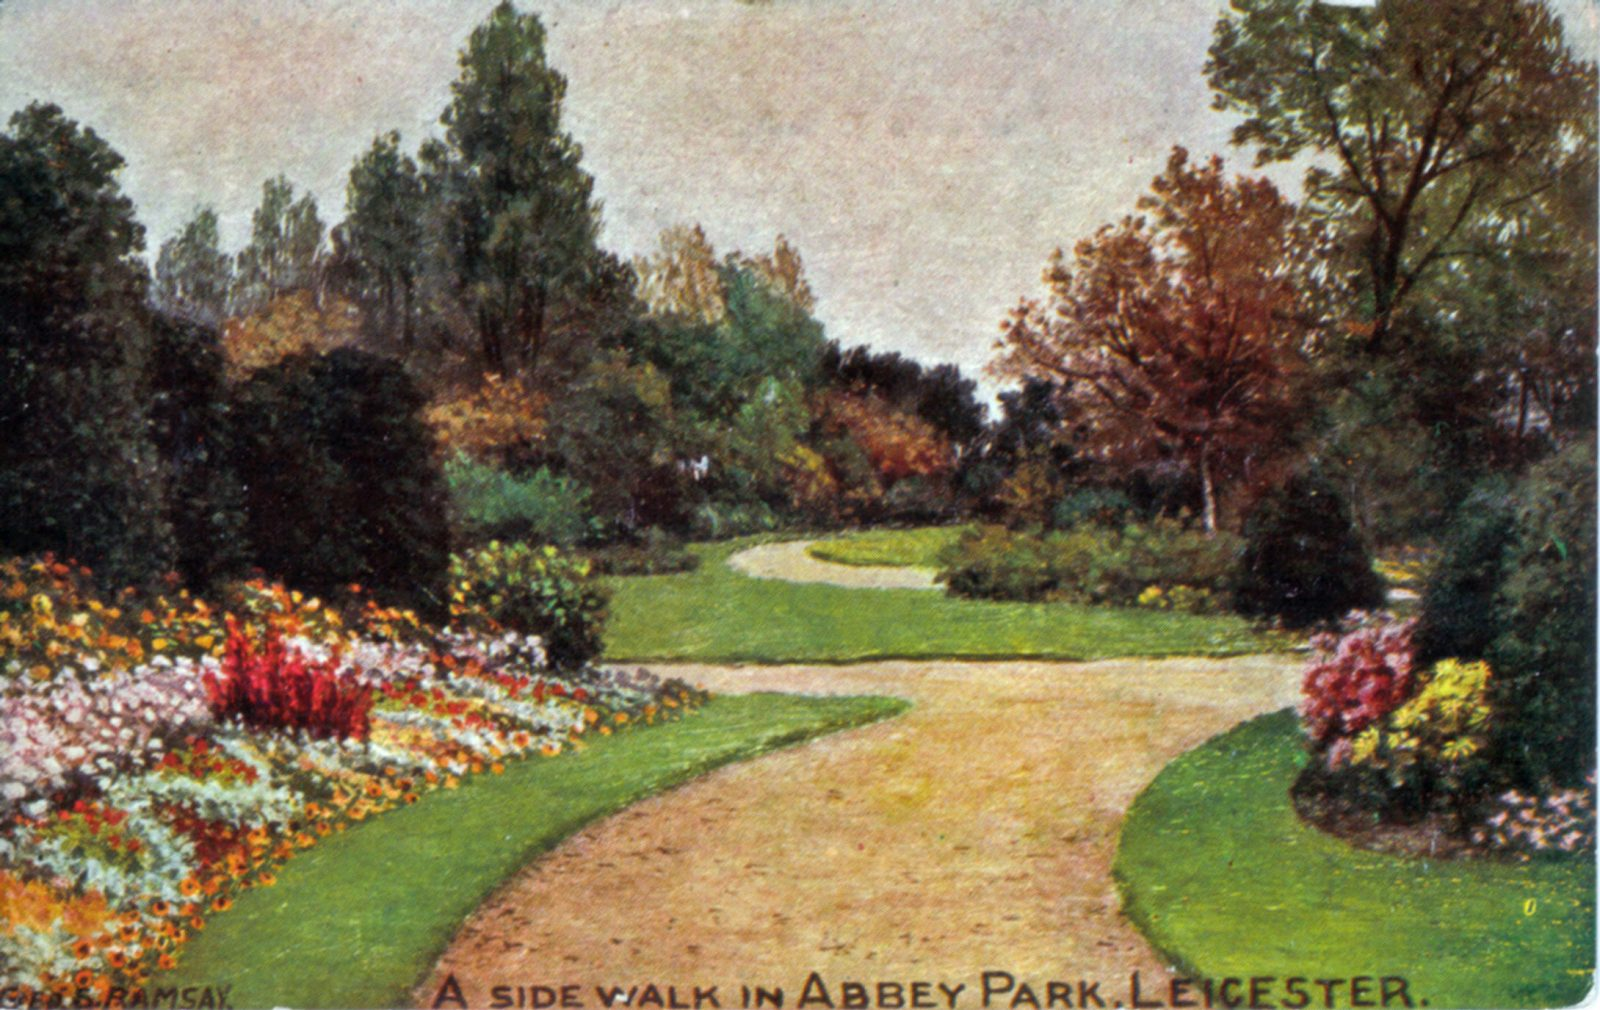 Abbey Park, Leicester. 1901-1920: A side walk in Abbey Park with extensive formal bedding. From an oil painting by Geo. S. Ramsey. Franked 1912 (File:1211)